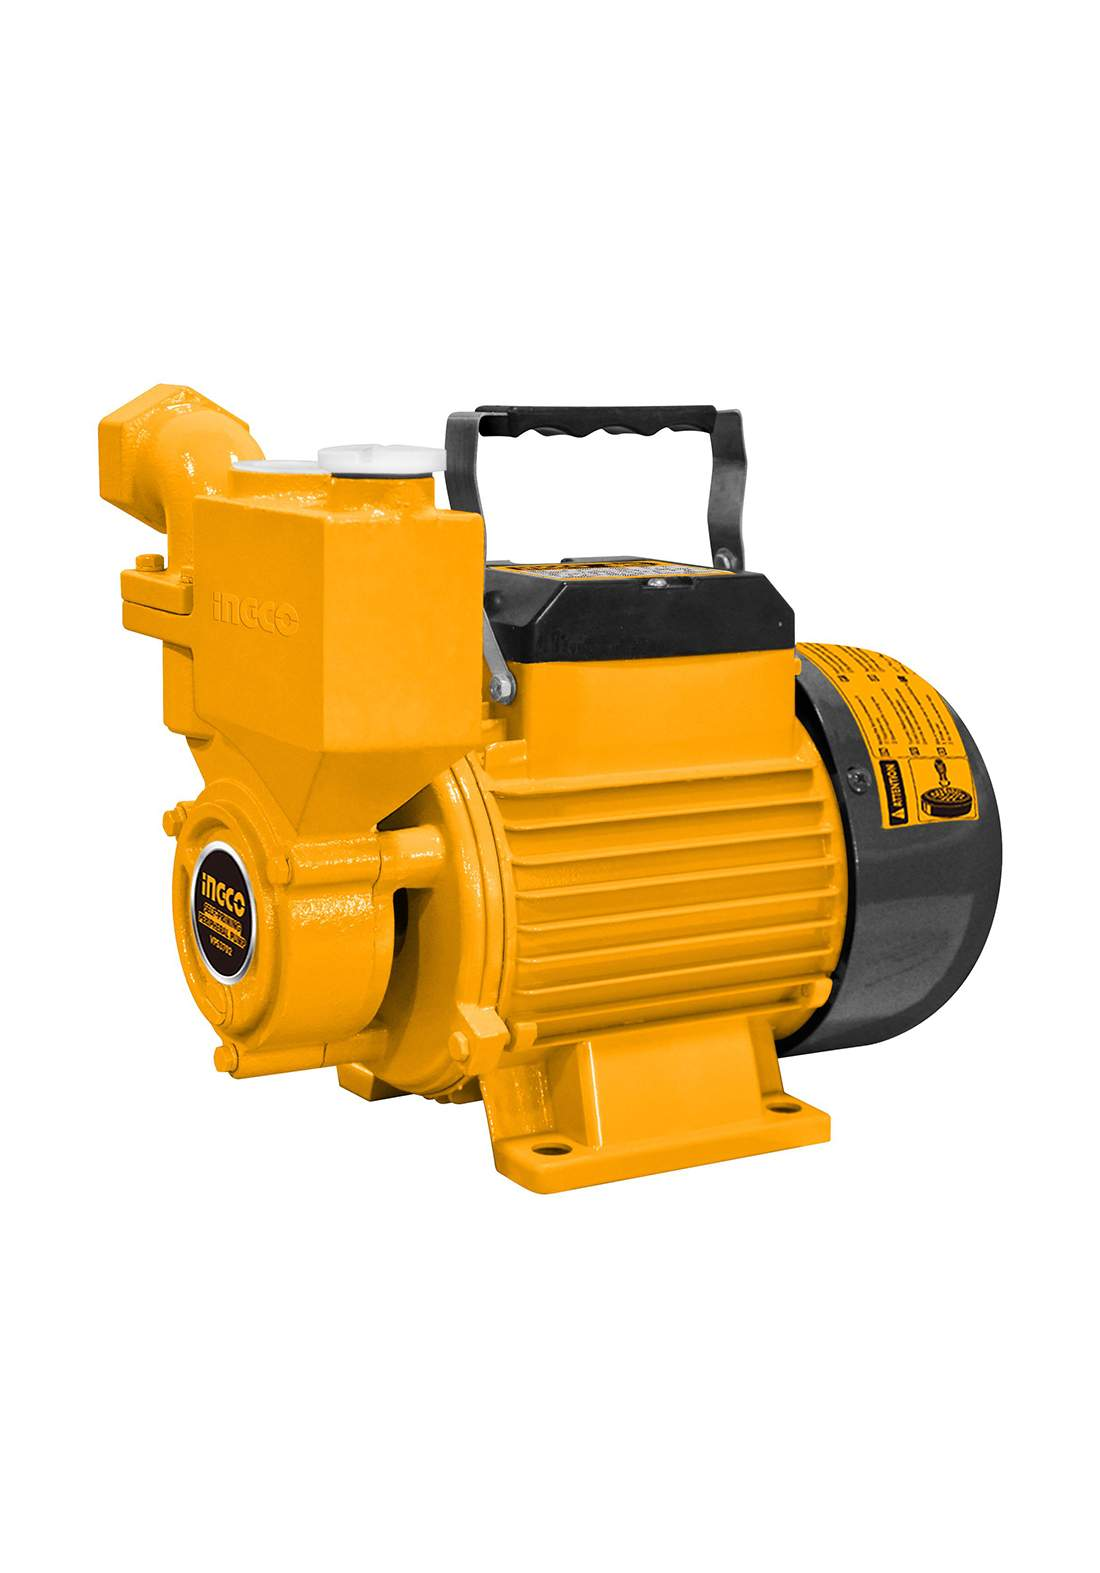 Ingco VPS5502 copper wire motor water pump   ماطور كهربائي